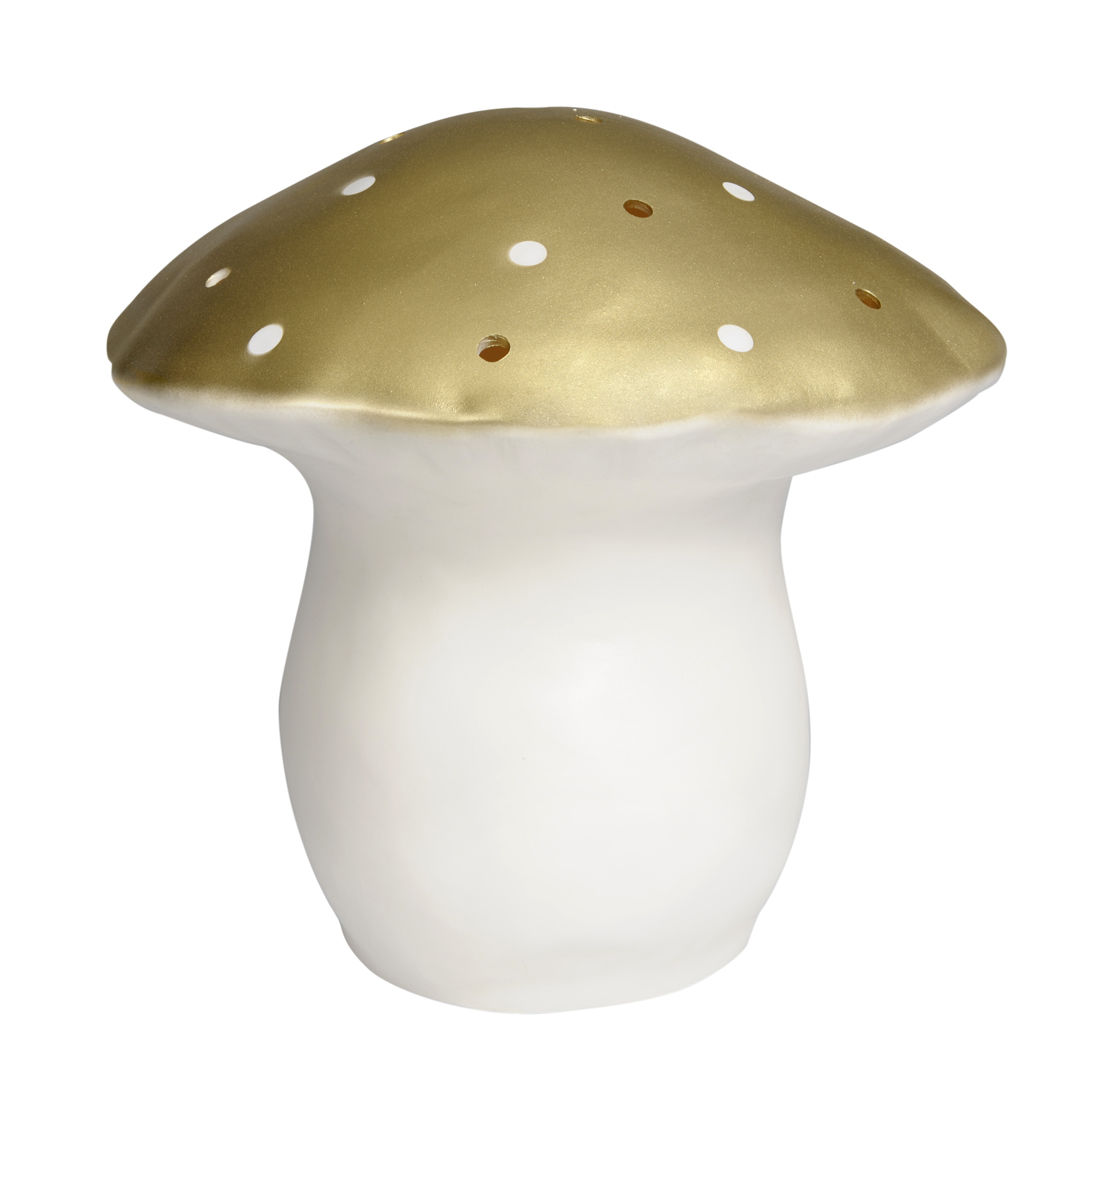 Large Mushroom Lamp GOLD by Heico - product images  of